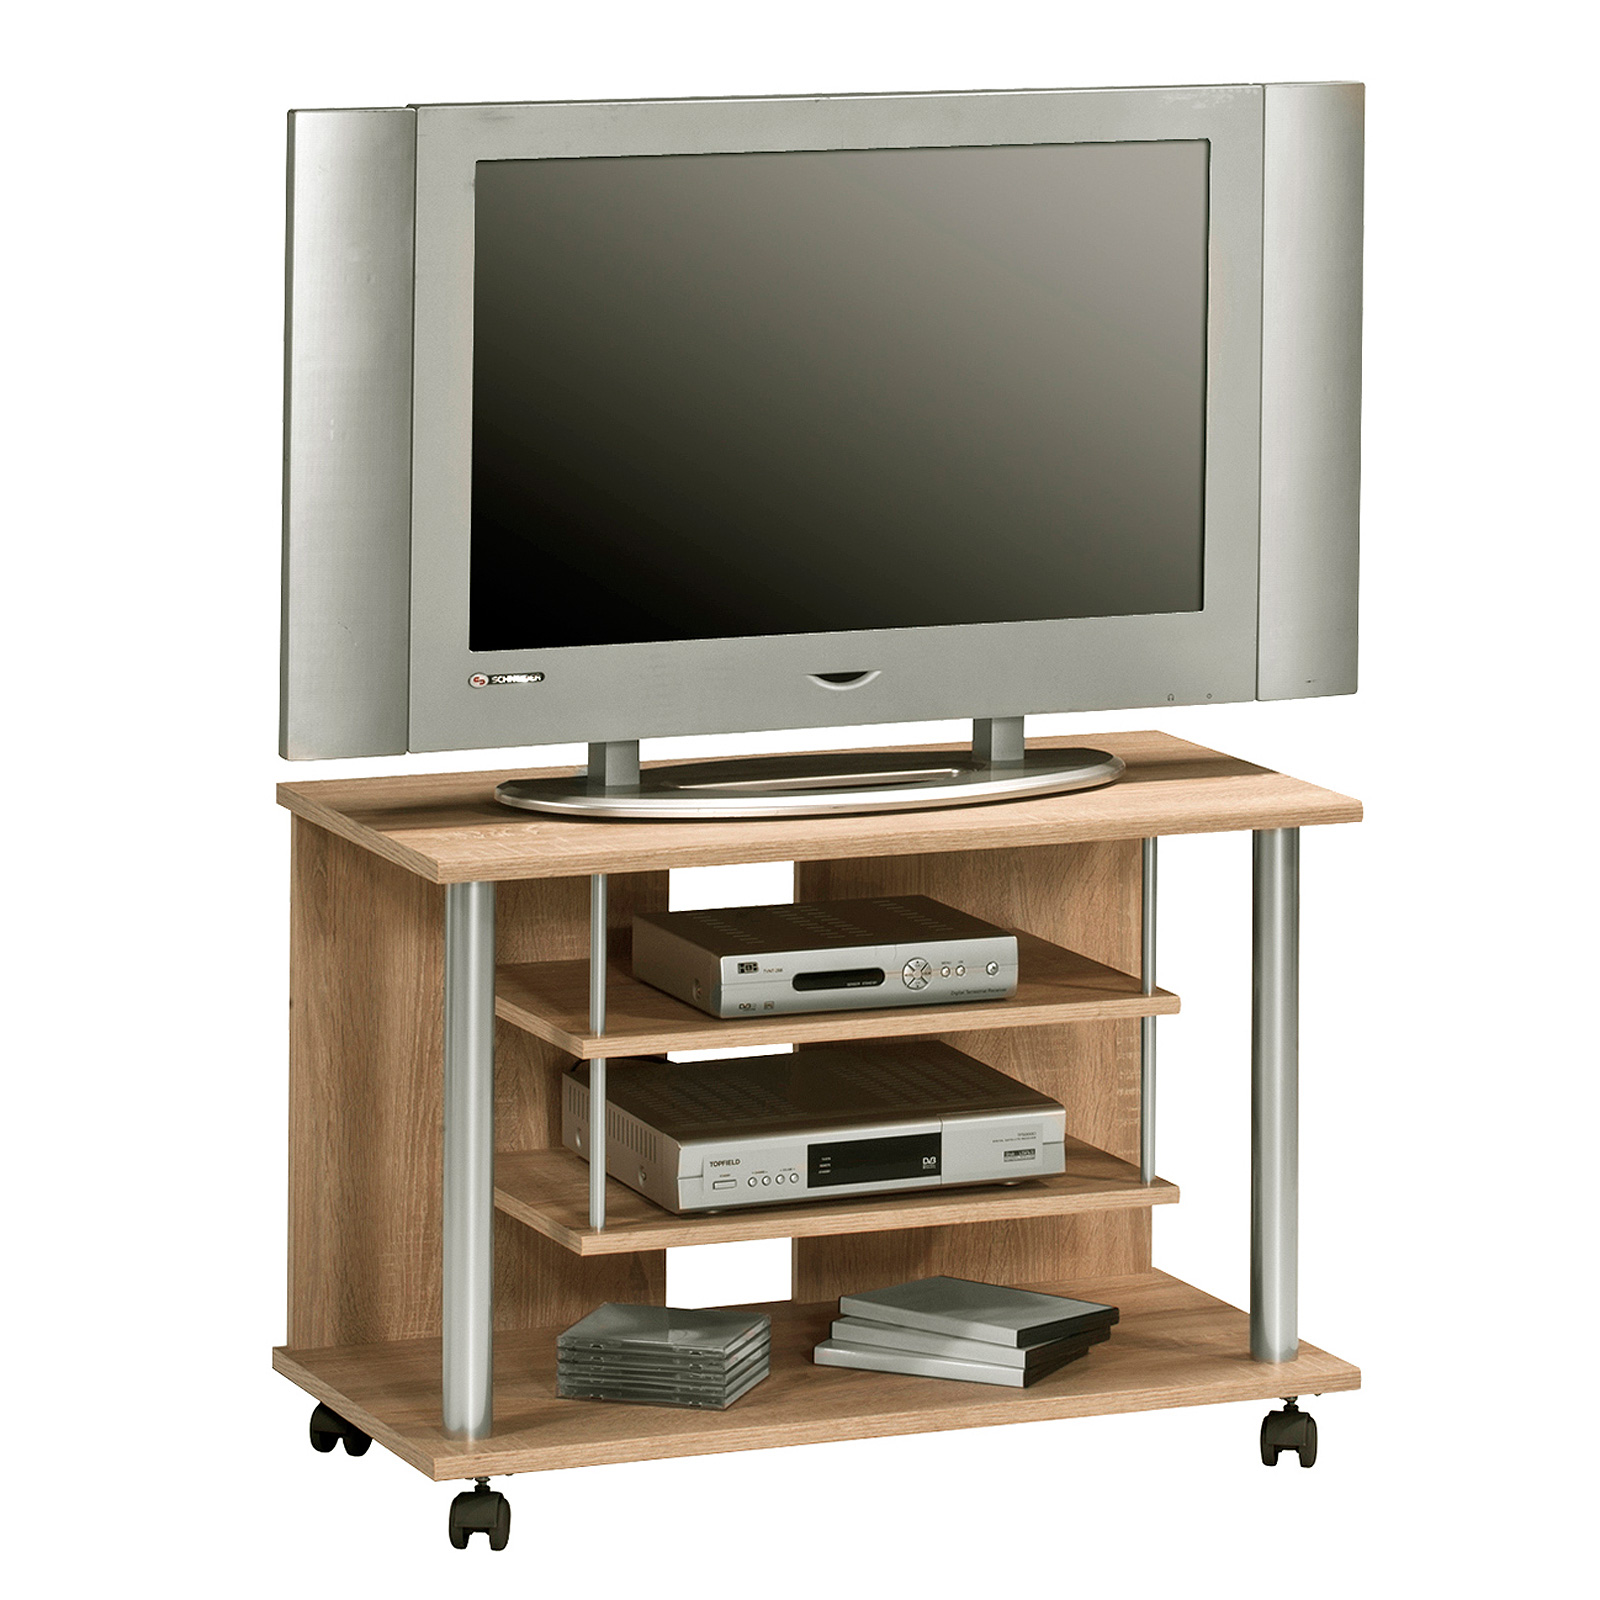 tv rack maja 1898 tv board tv schrank mediam bel als. Black Bedroom Furniture Sets. Home Design Ideas